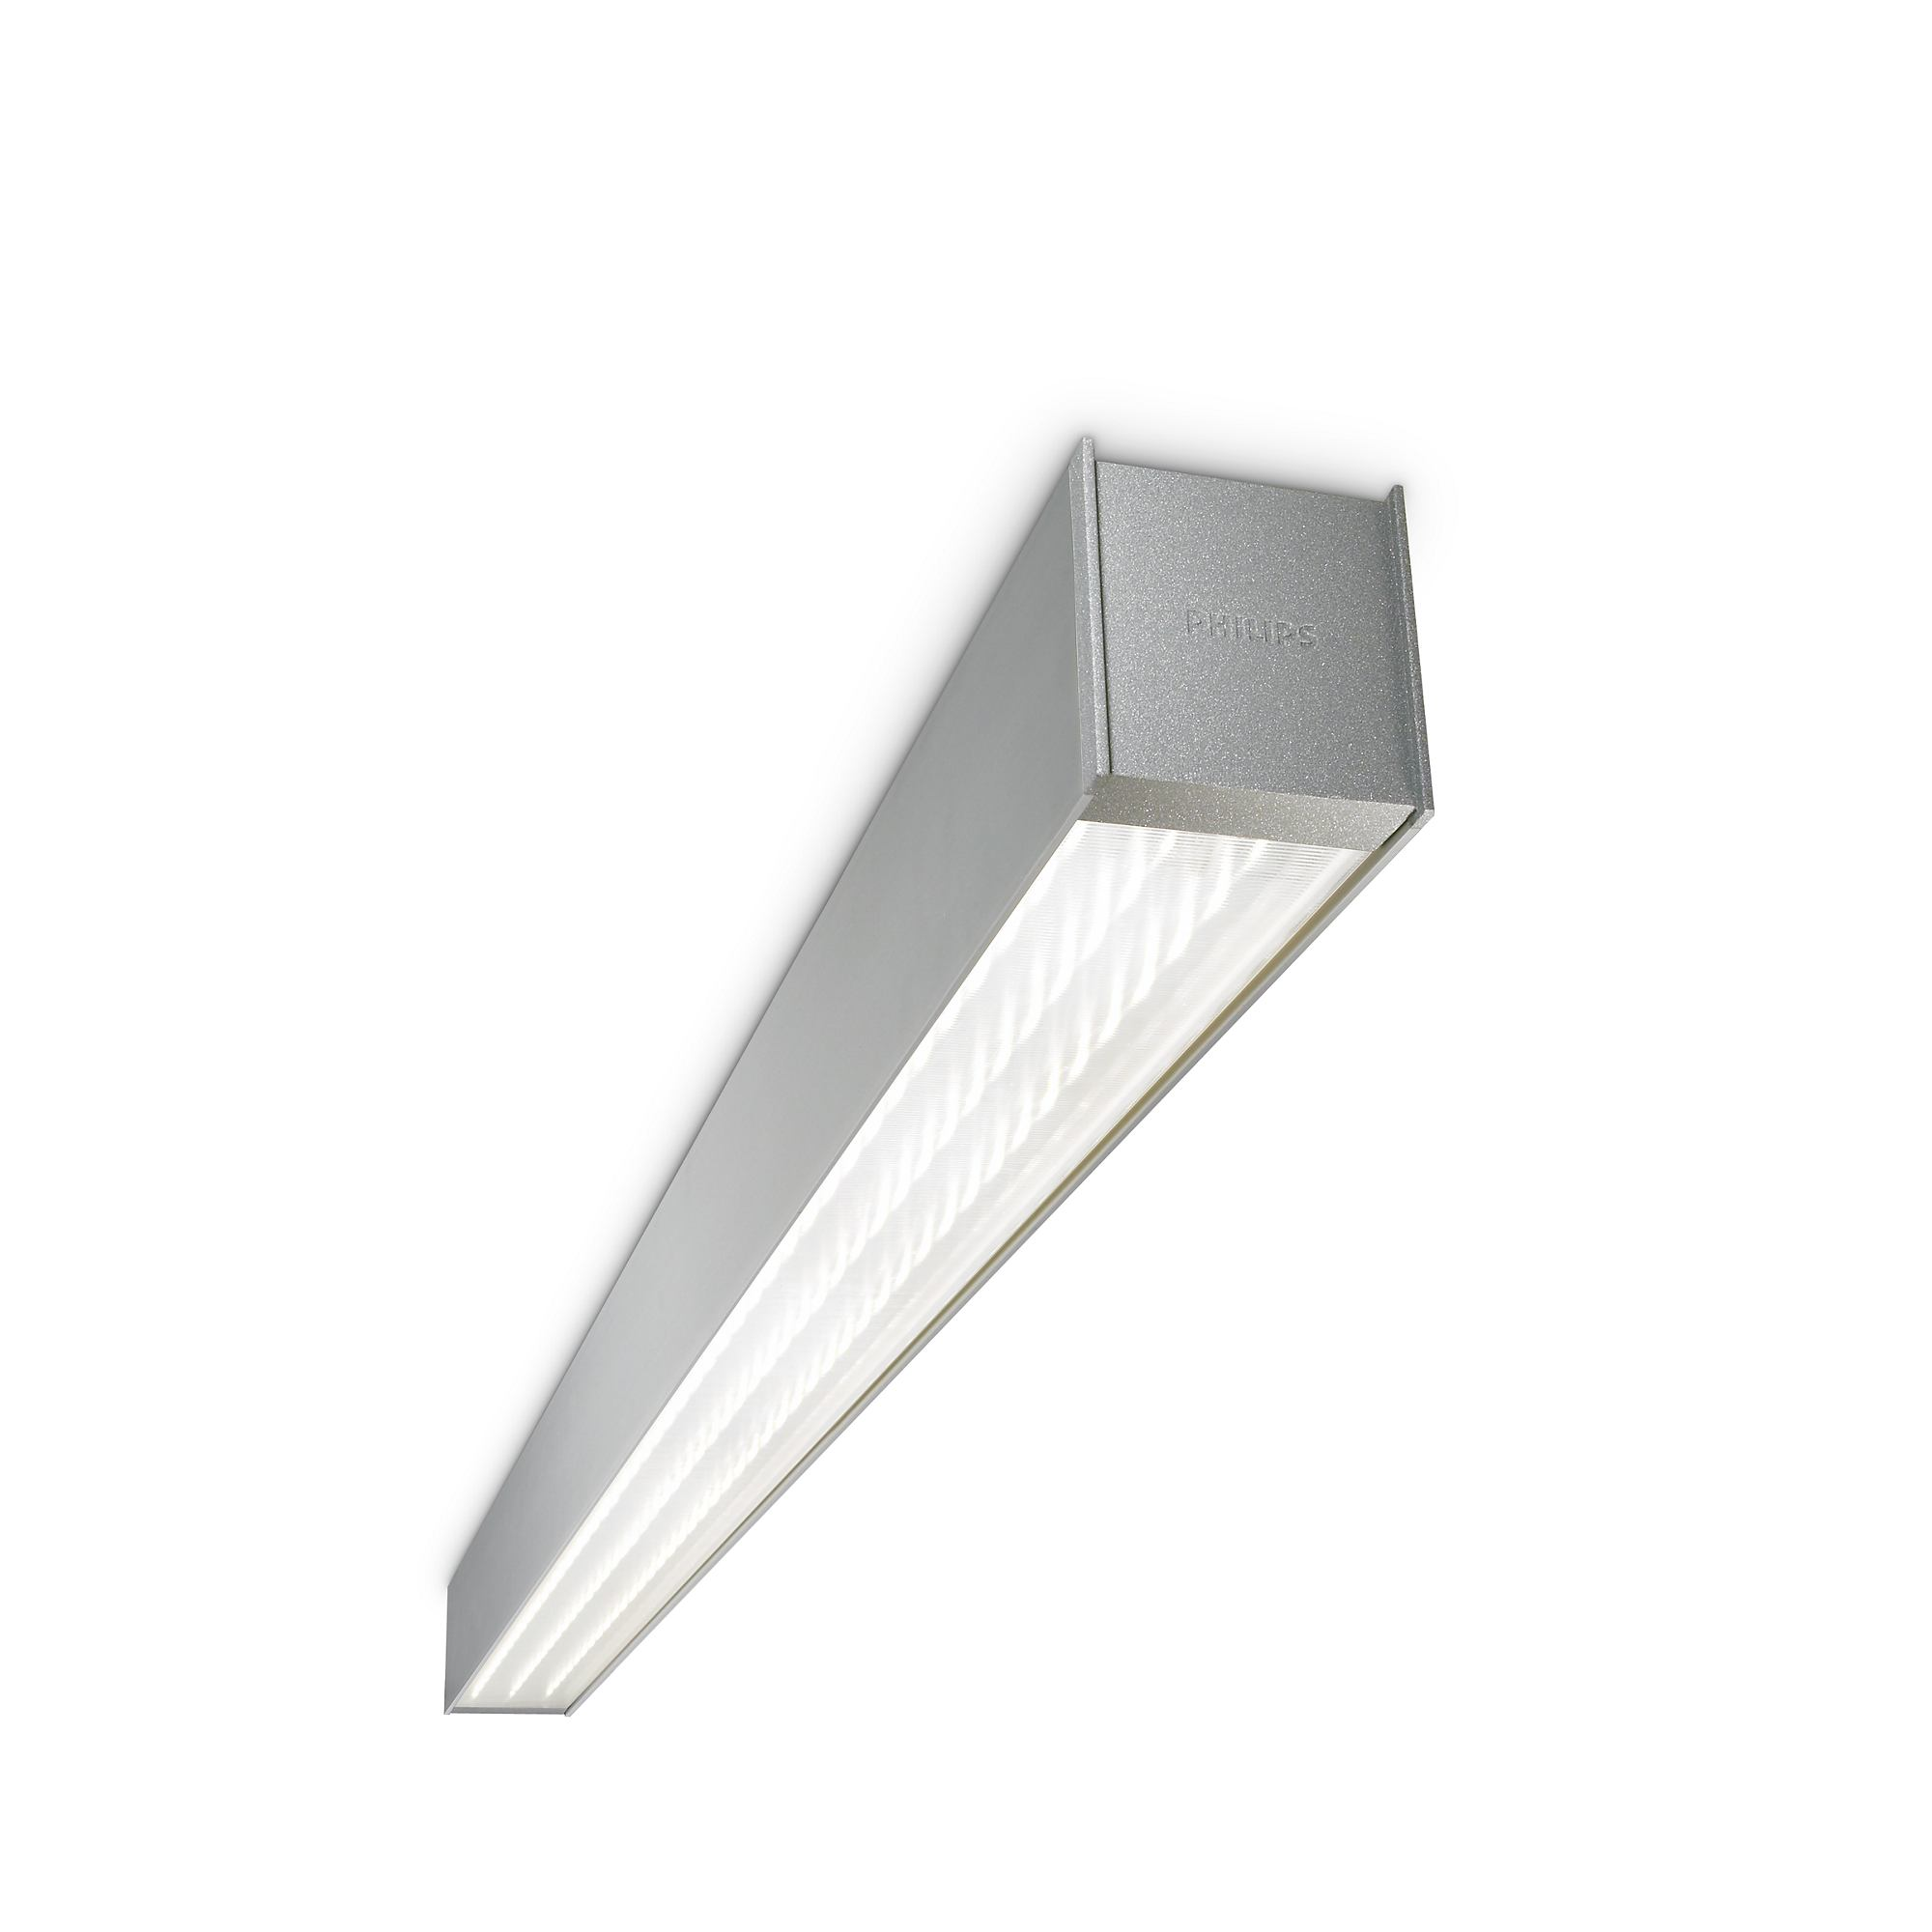 Celino BCS680 led48/840 psd w17l122 lin pc